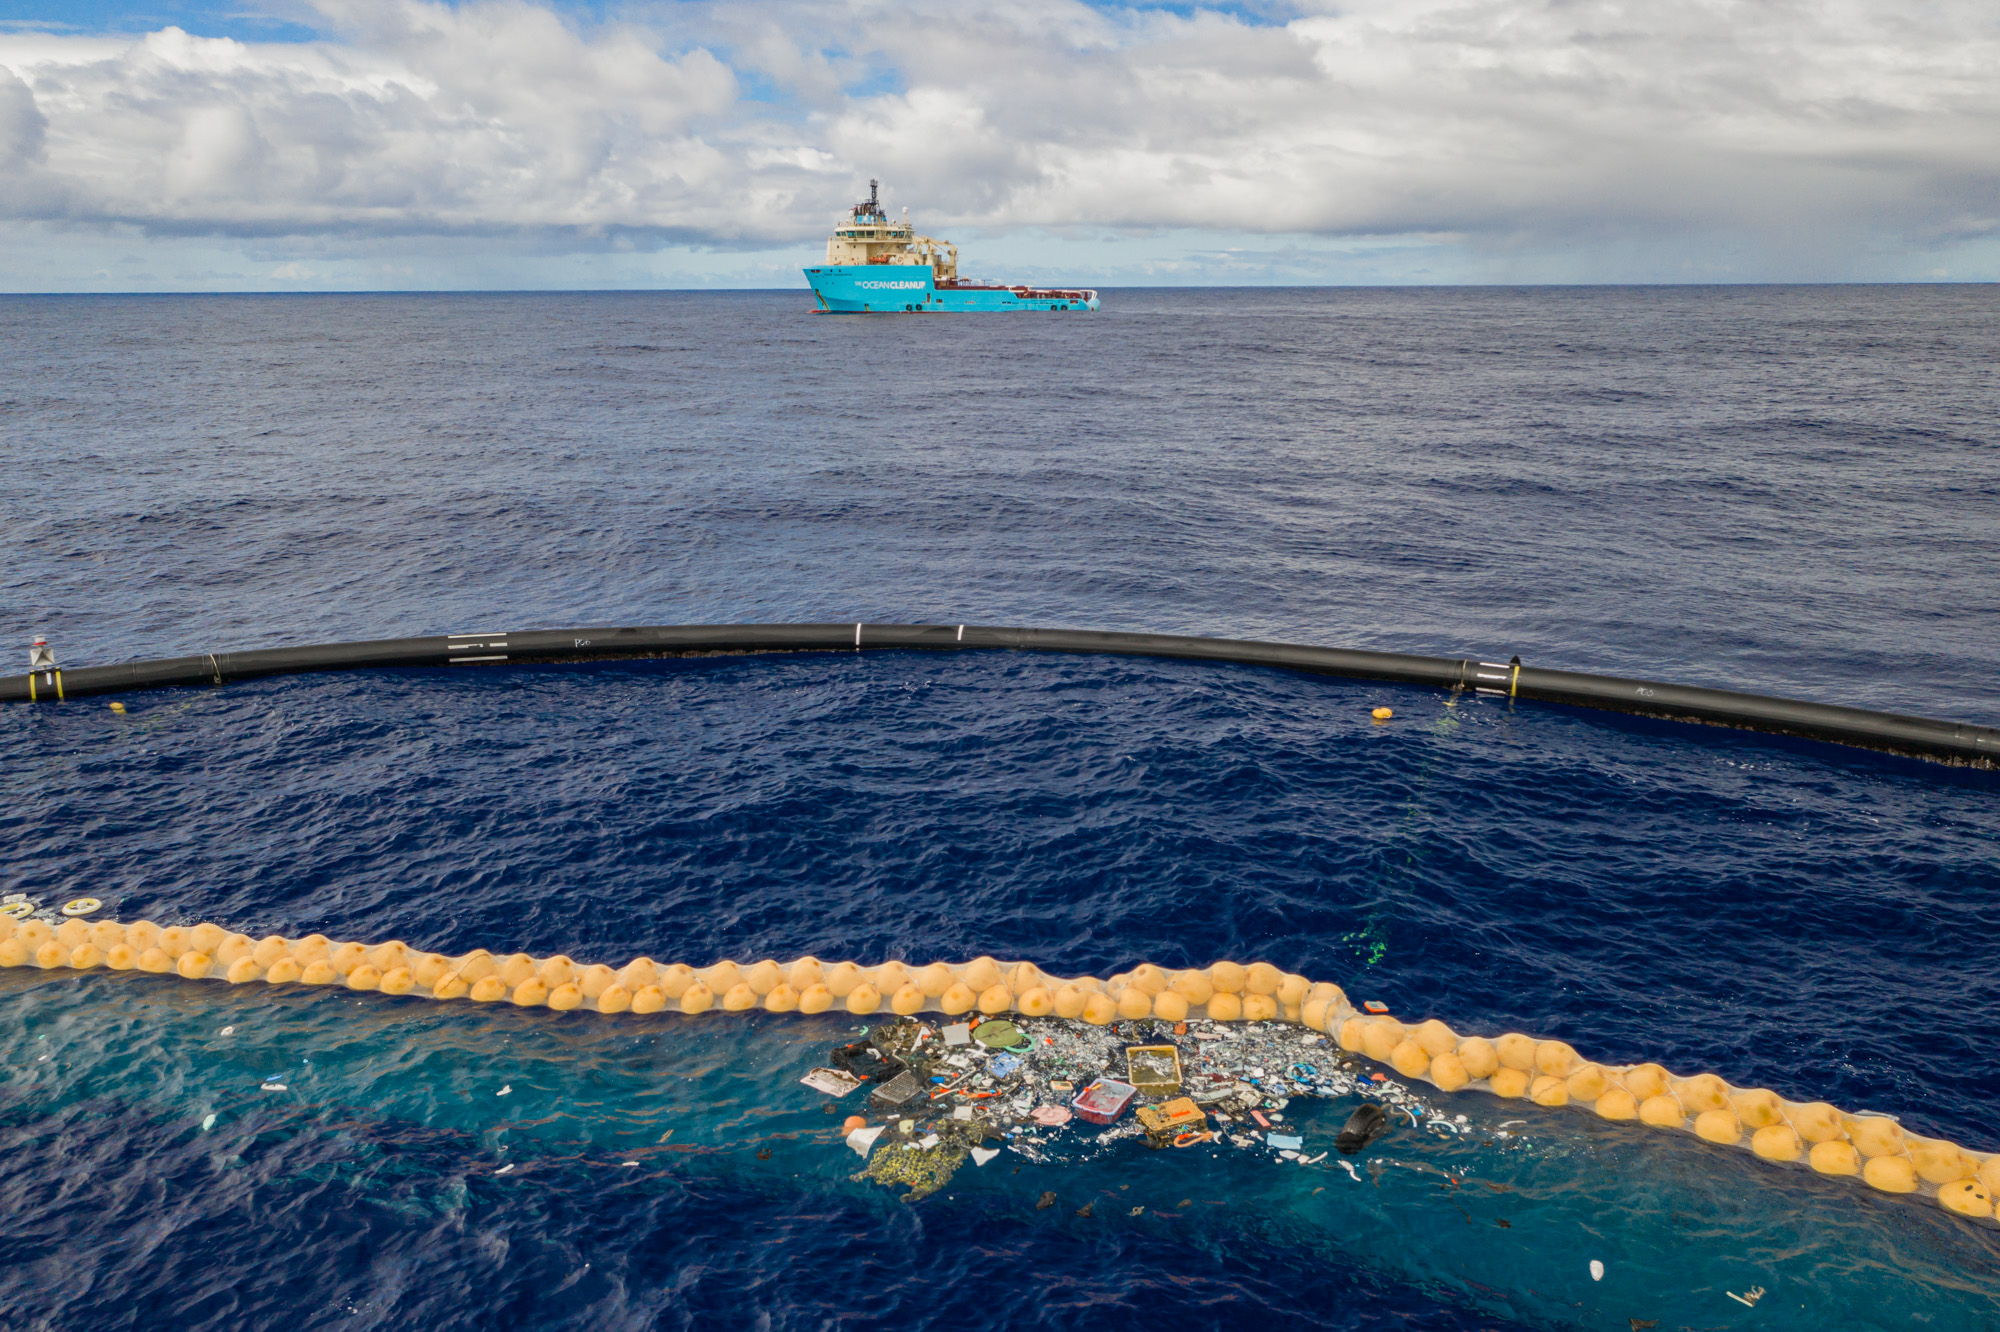 Ocean Cleanup starts harvesting plastic from the Great Pacific Garbage Patch